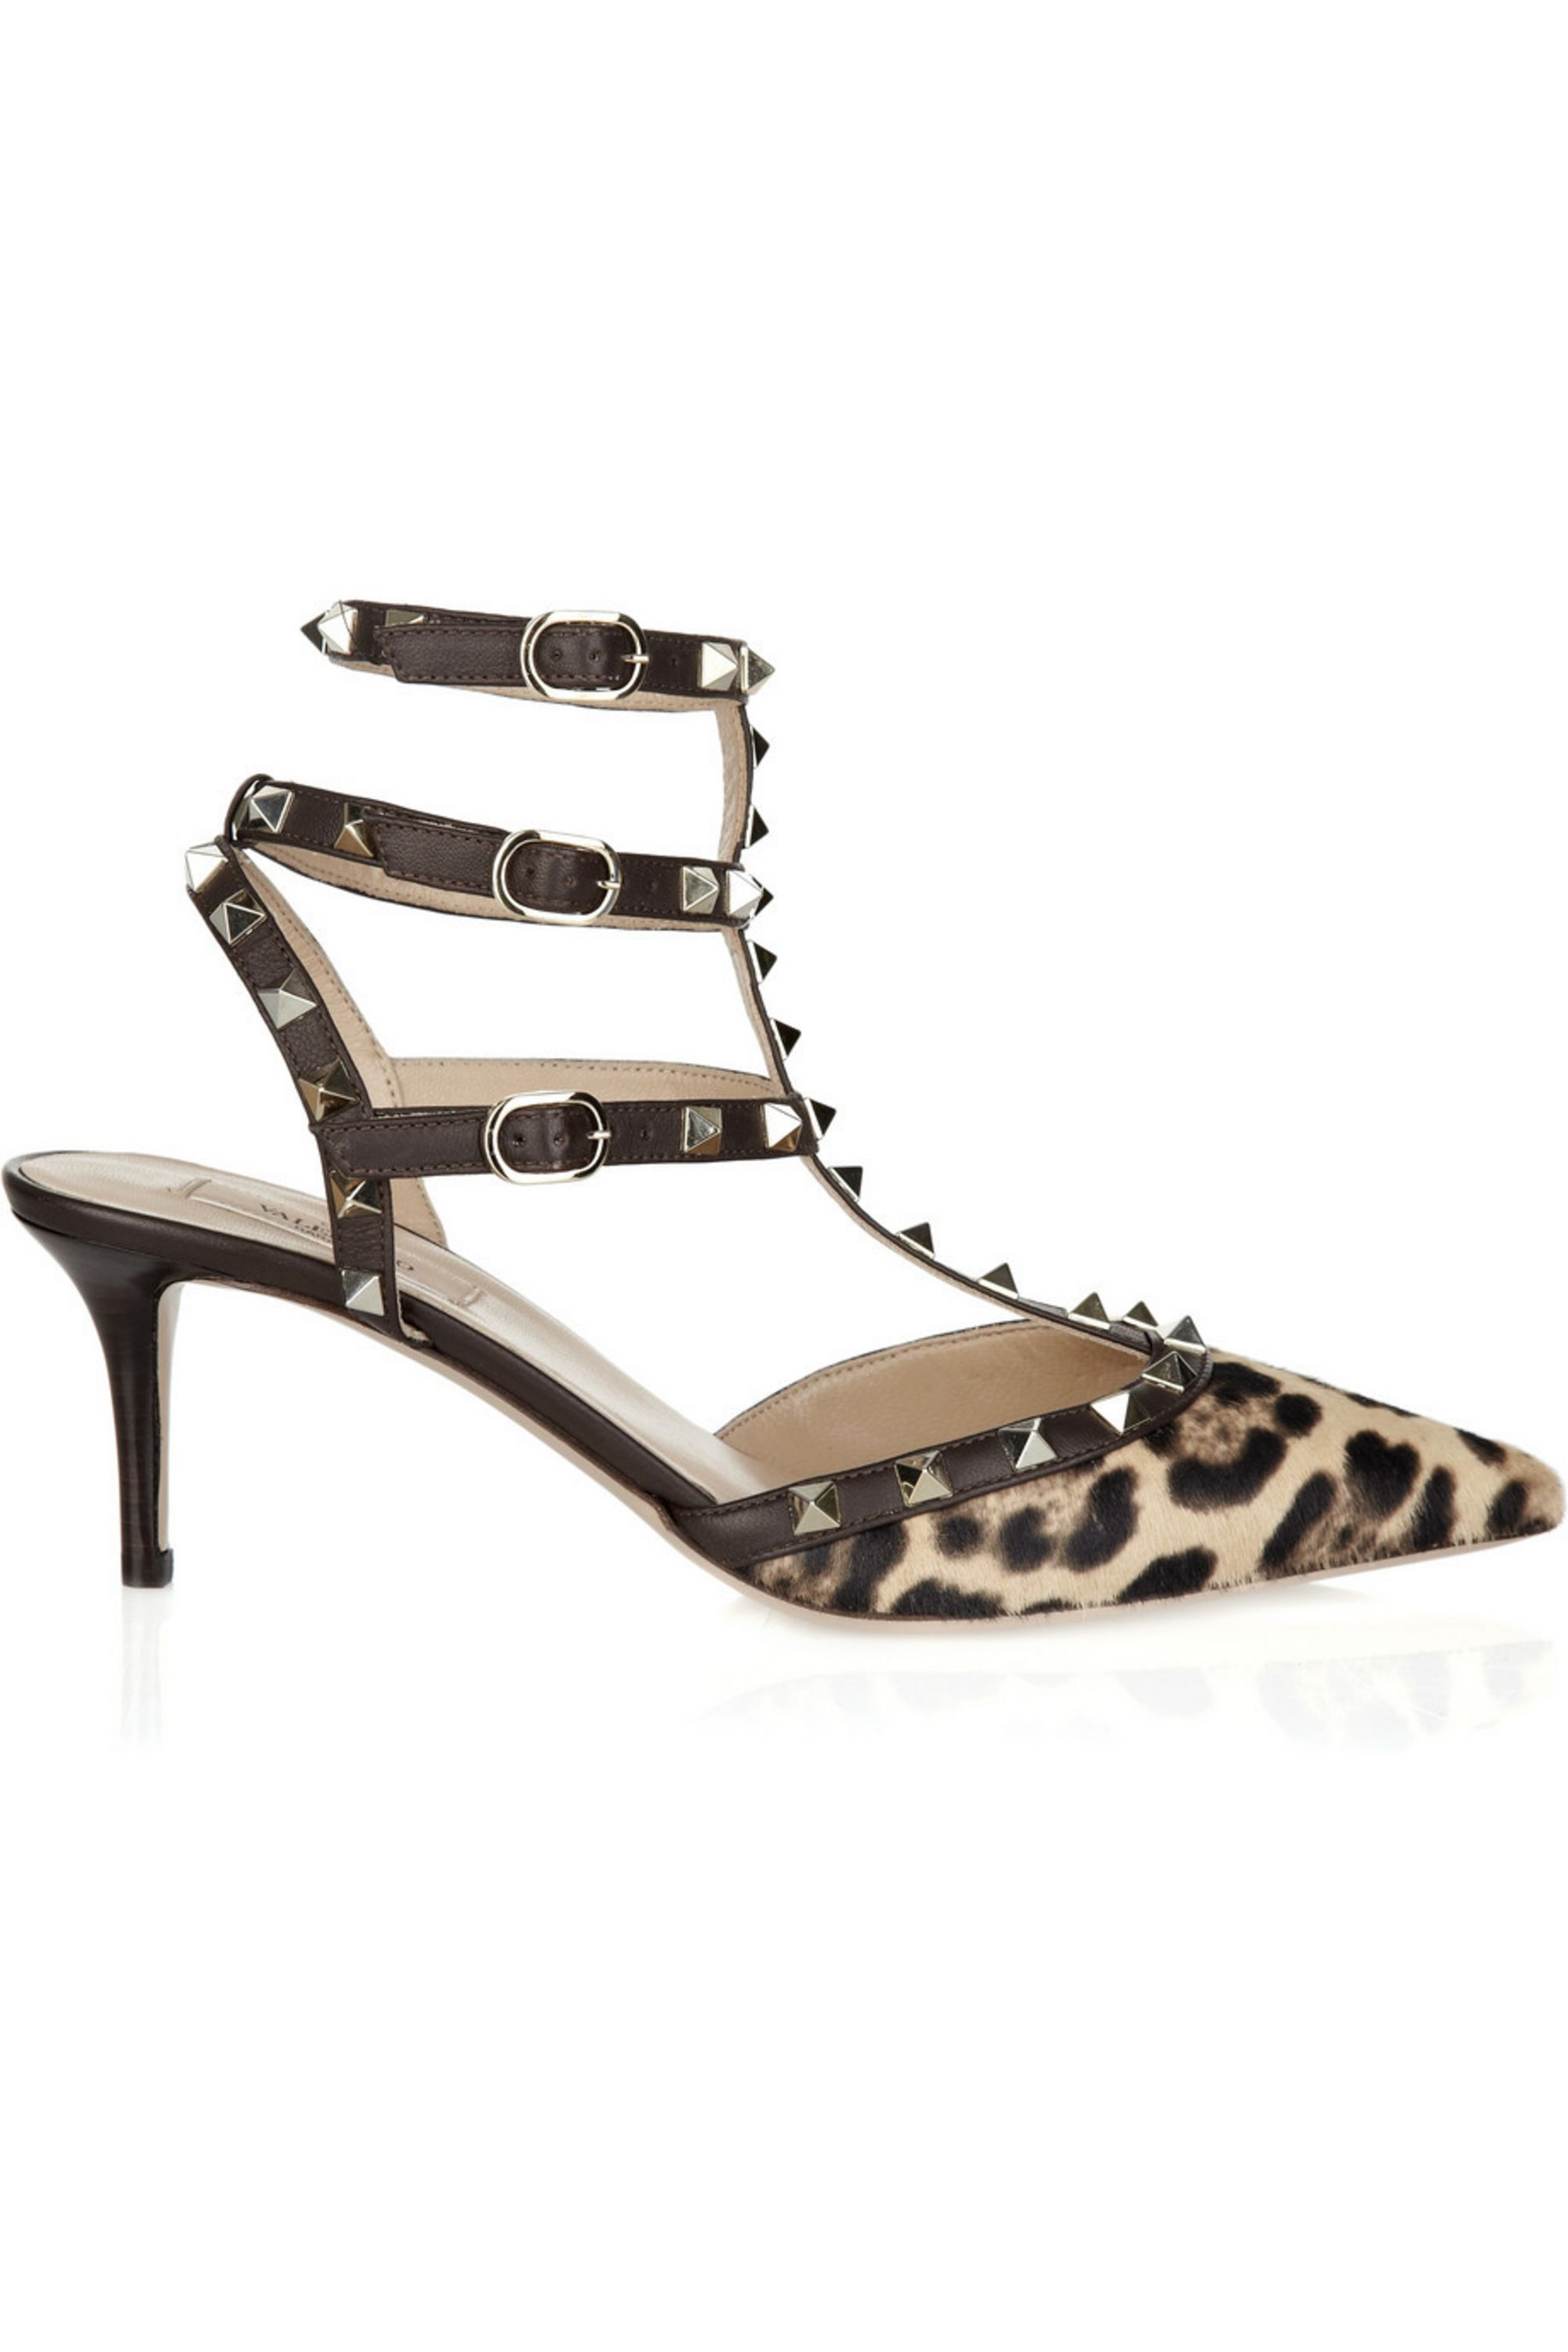 Valentino Studded calf hair kitten heel sandals